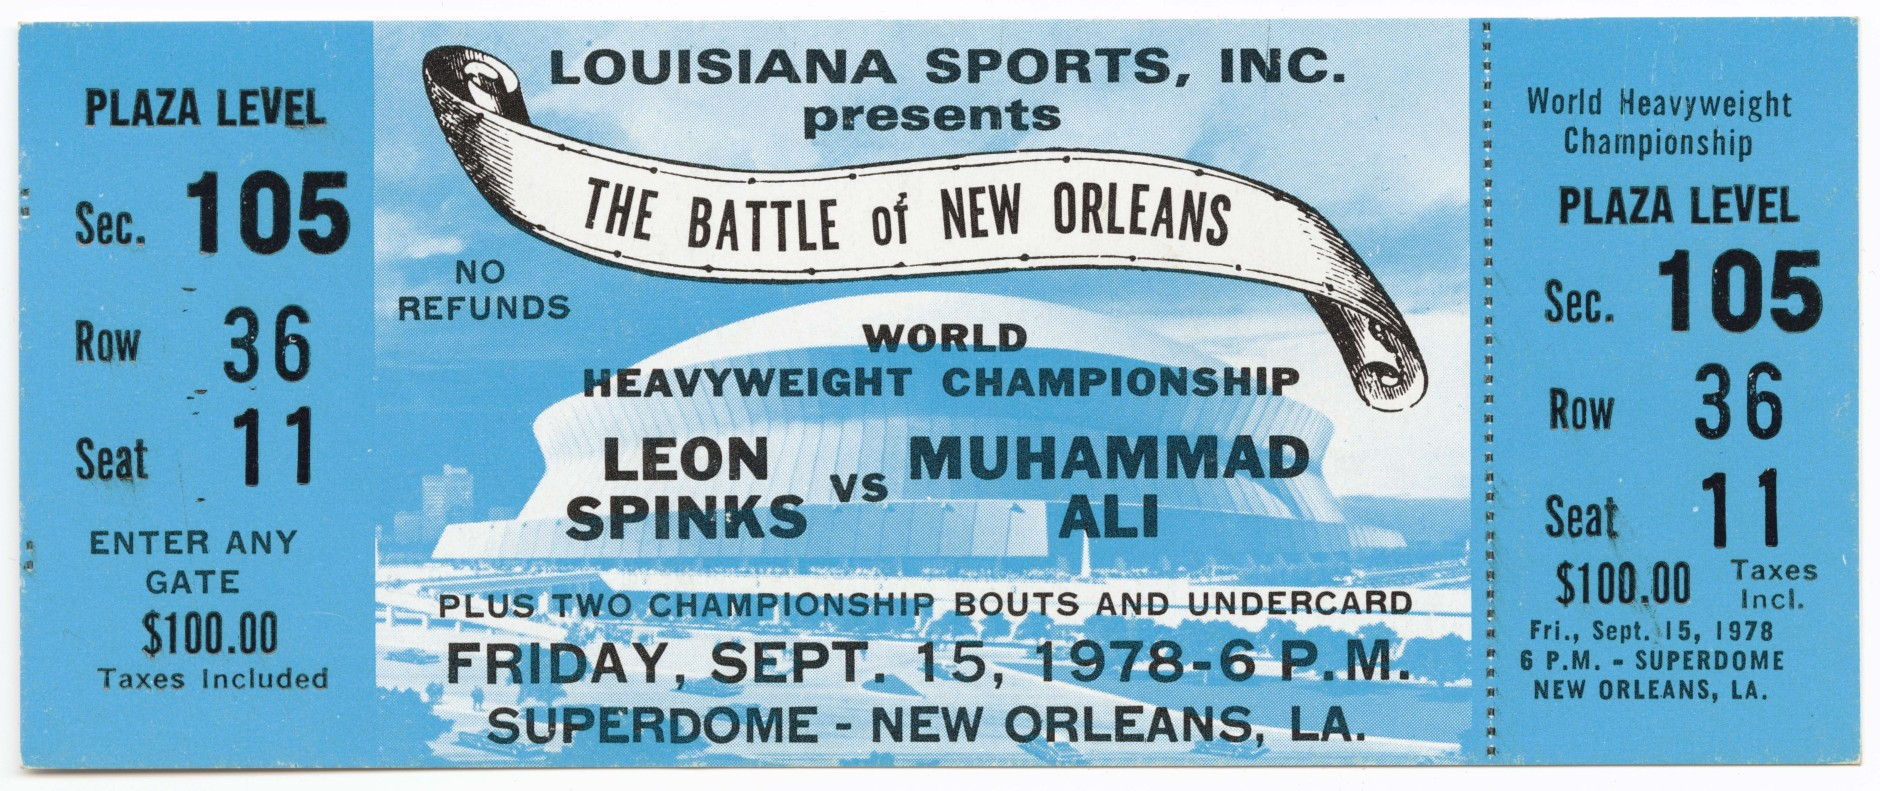 "Ticket to the World Heaveywieght Championship boxing match between Muhammad Ali and Leon Spinks. The ticket is blue with black text. An image of the Superdome can be seen on the ticket. The text on the ticket starts with ""LOUISIANA SPORTS, INC. / PRESENTS / THE BATTLE of NEW ORLEANS..."""